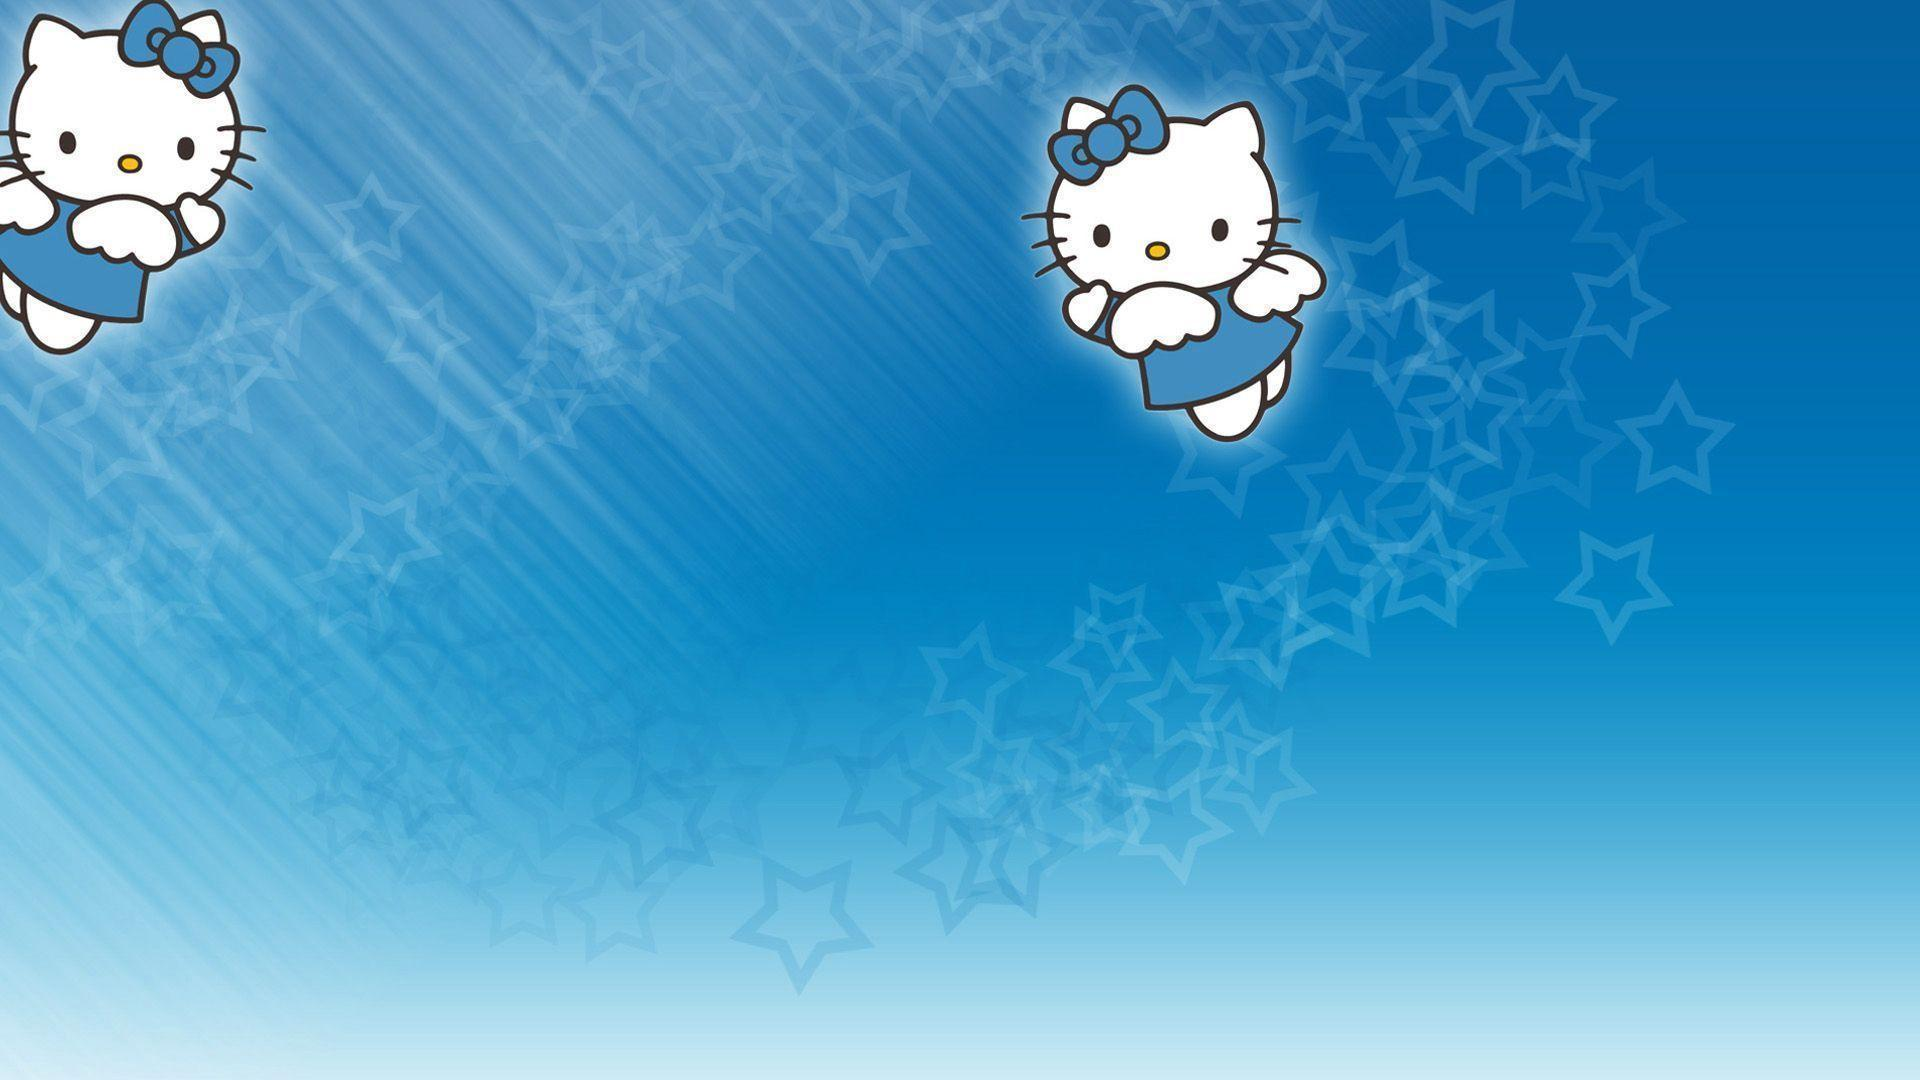 free hello kitty wallpaper for windows 7 - Free Download Wallpaper ...